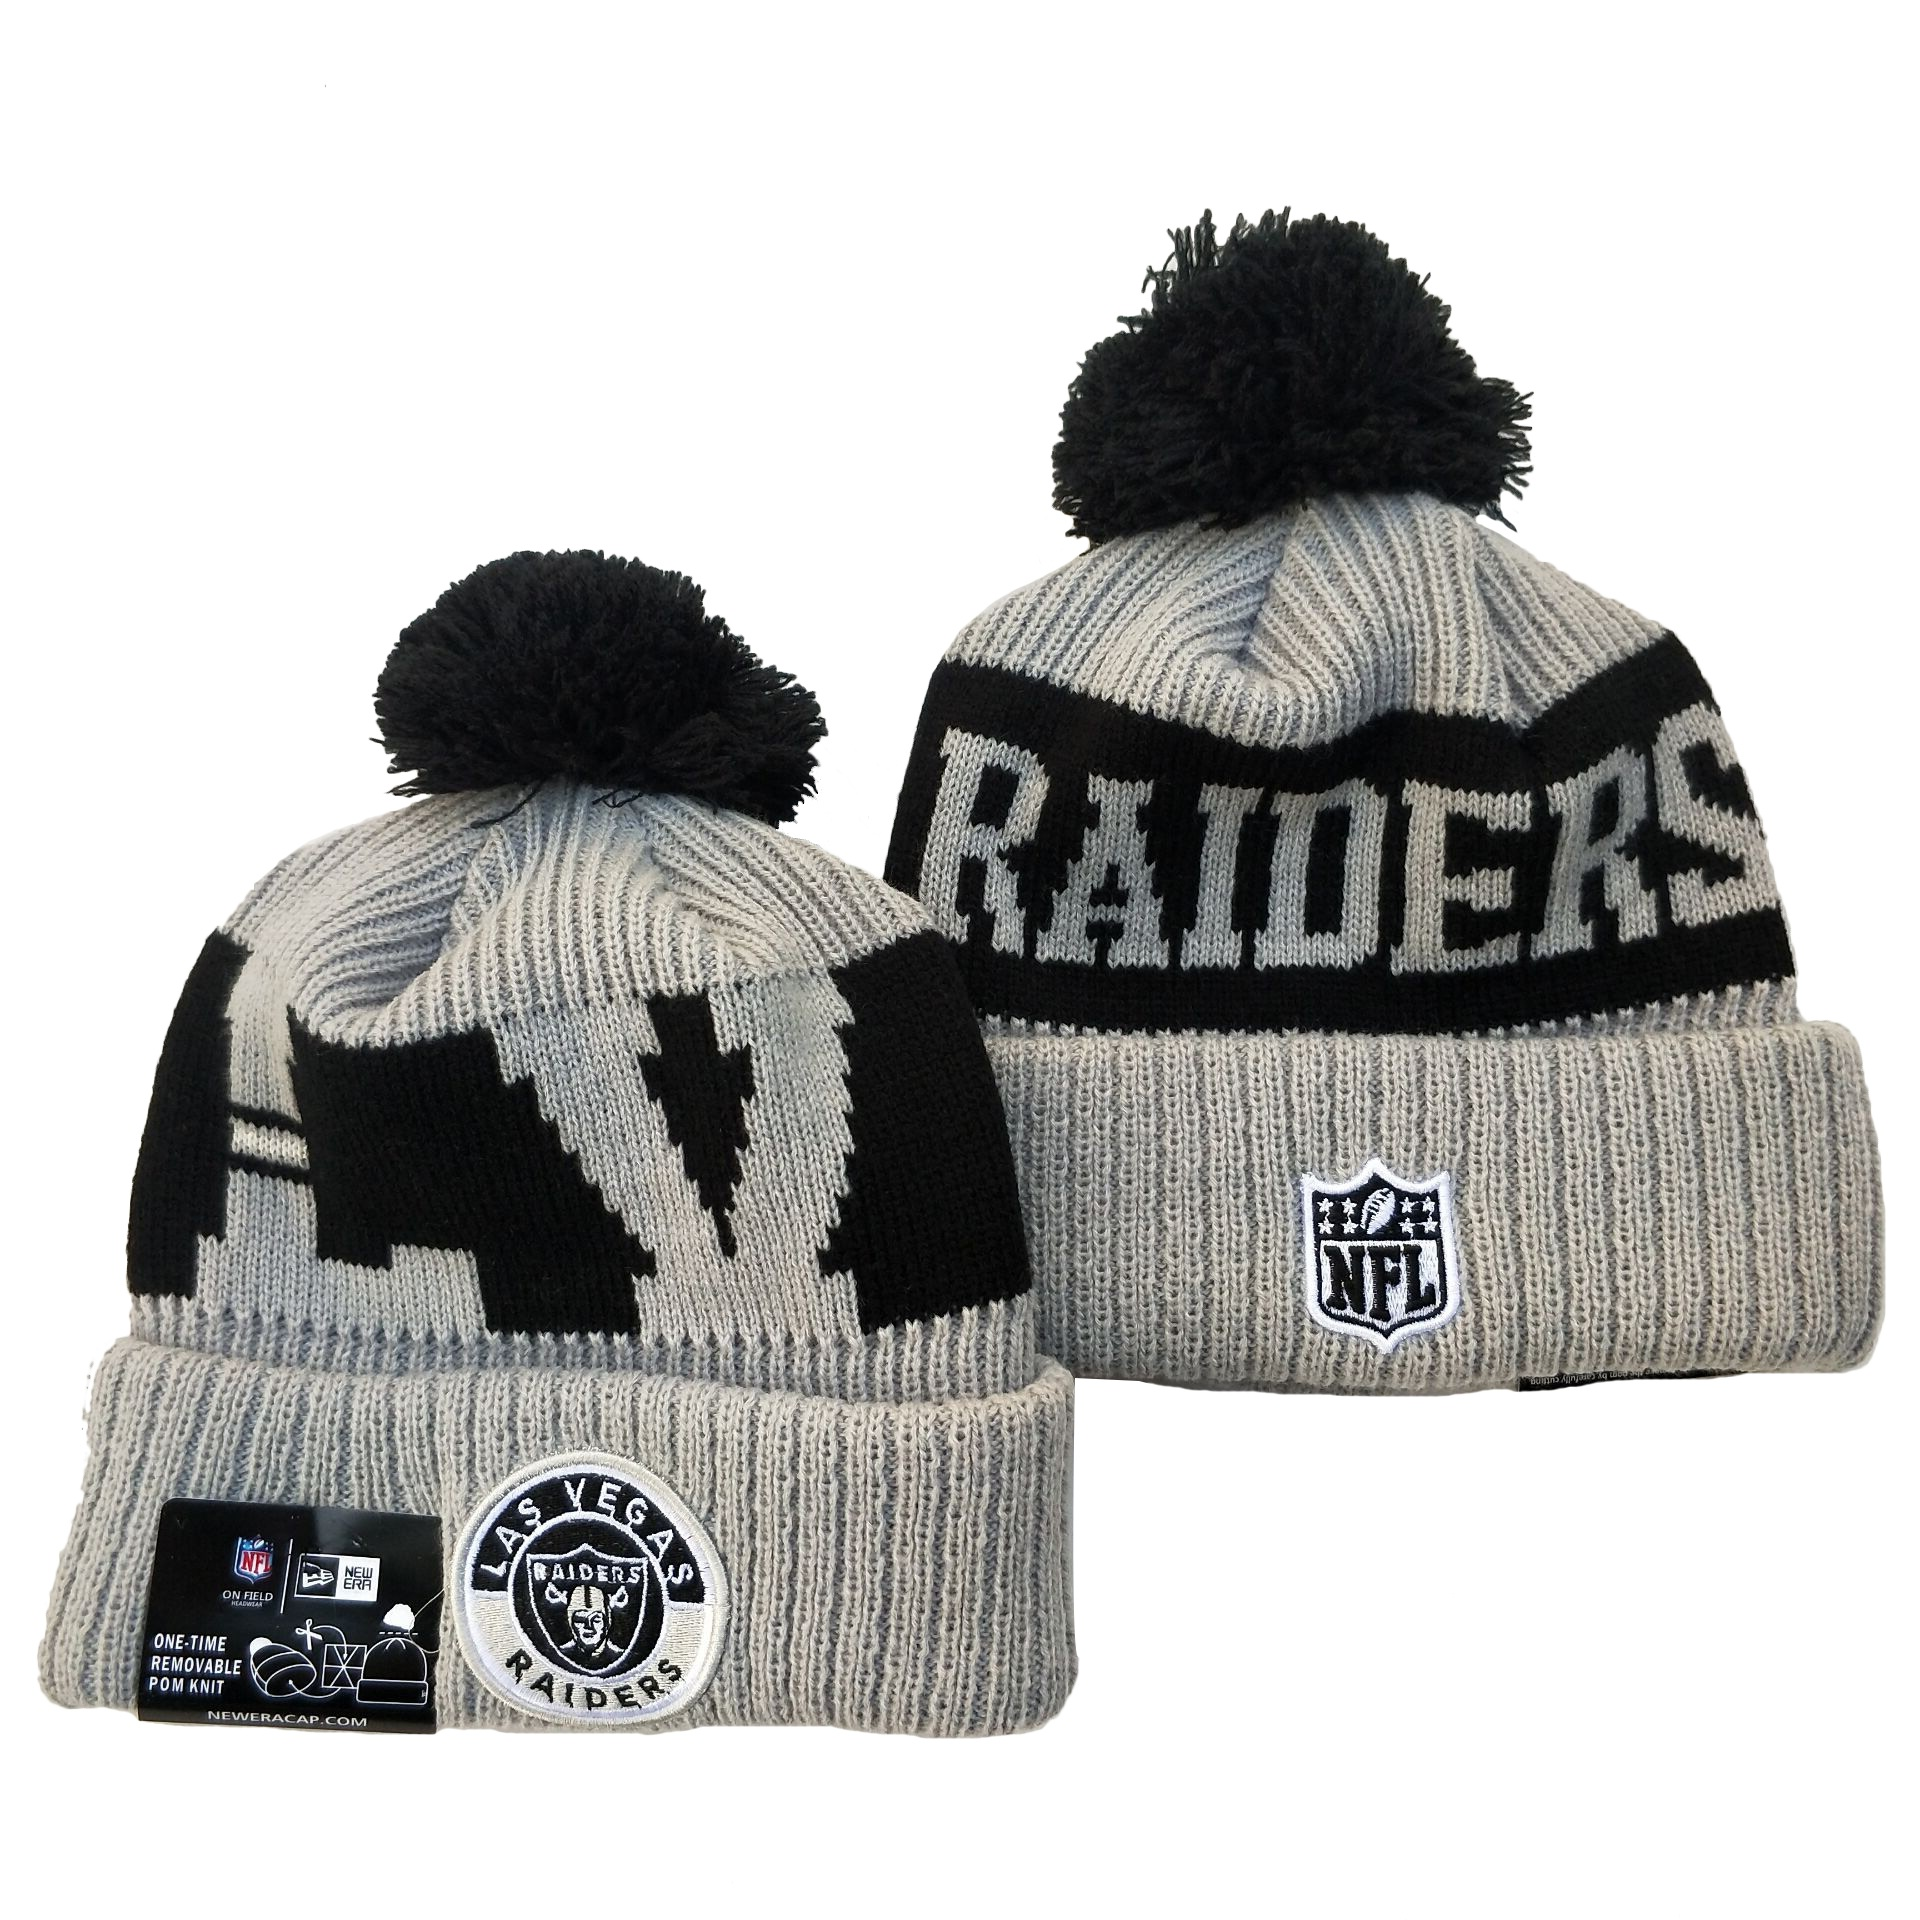 Las Vegas Raiders Knit Hats 077